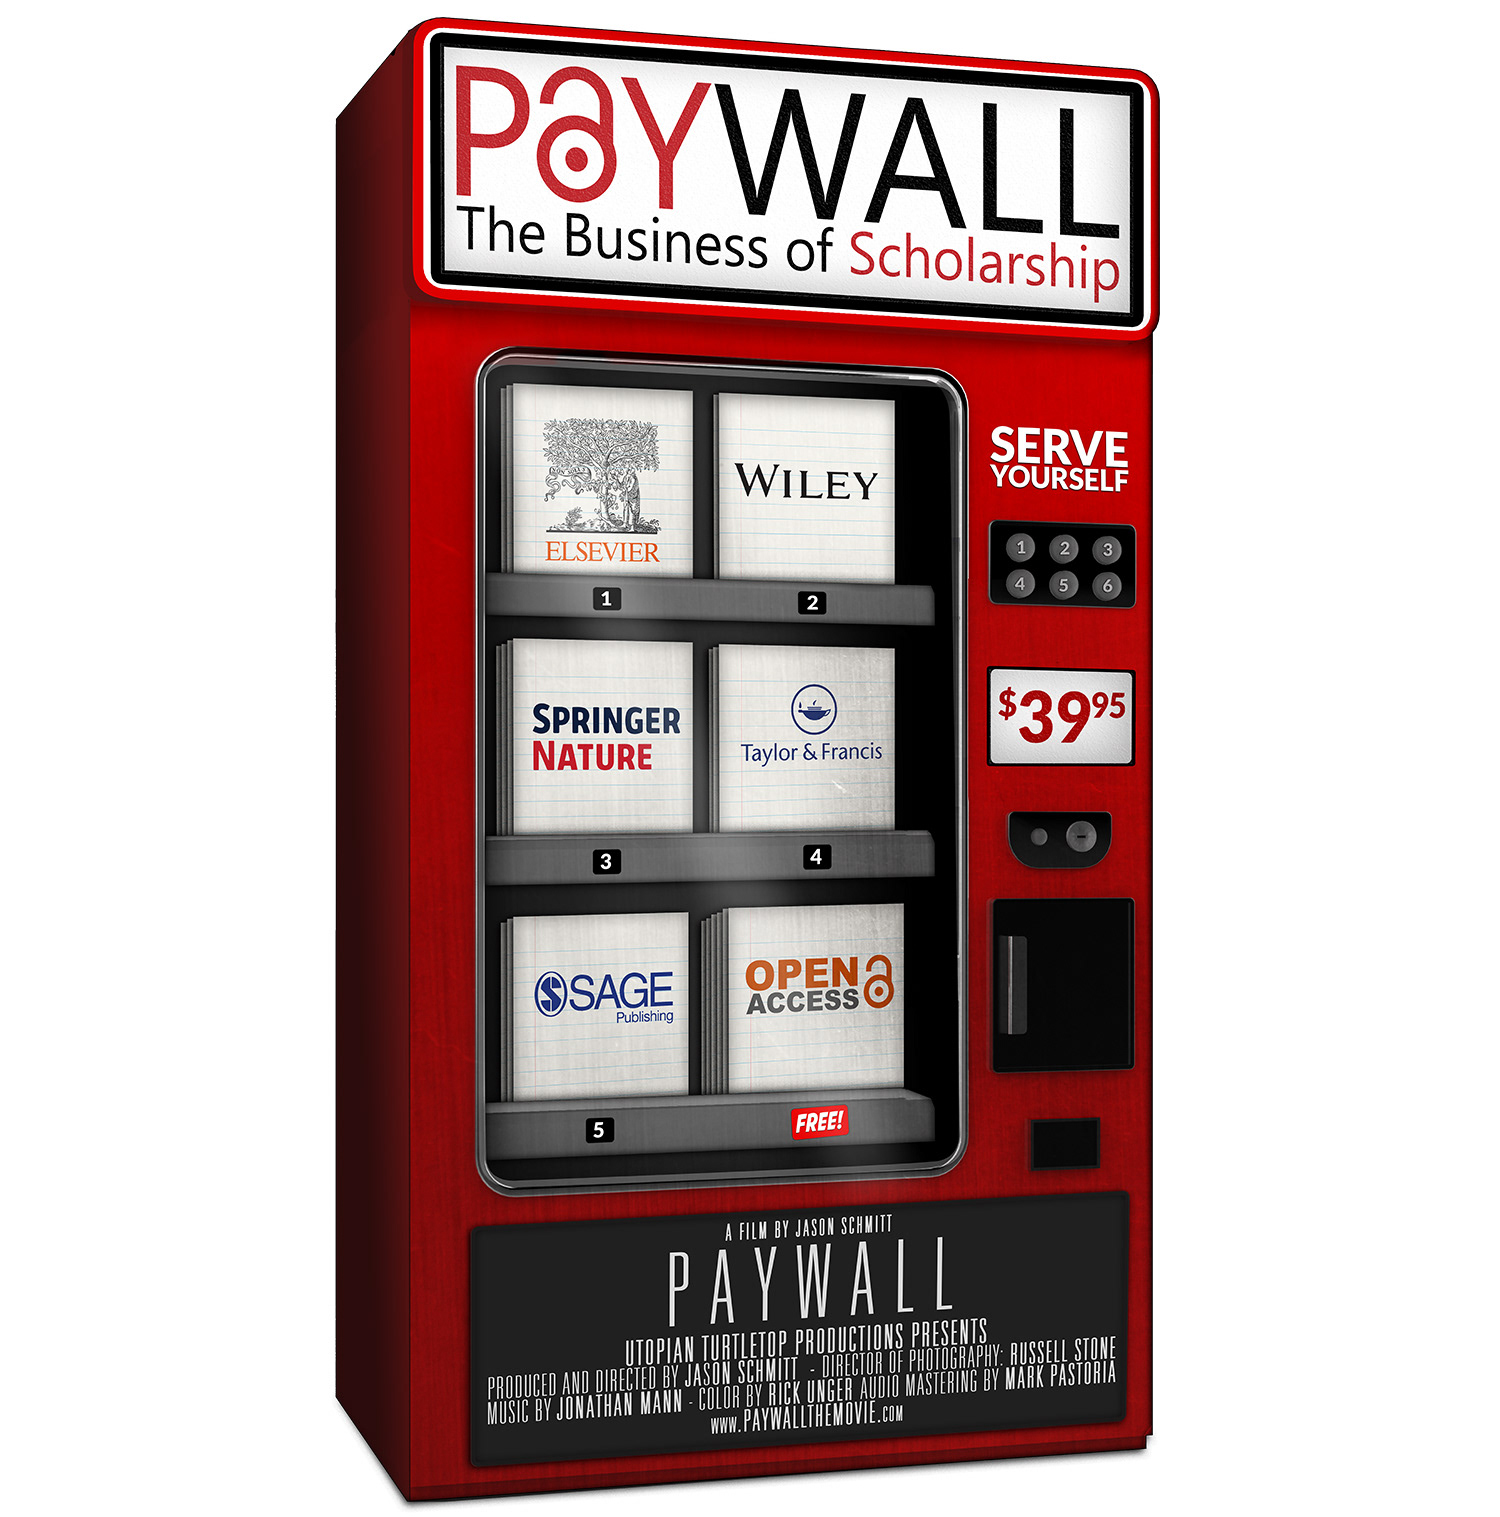 Paywall Movie logo